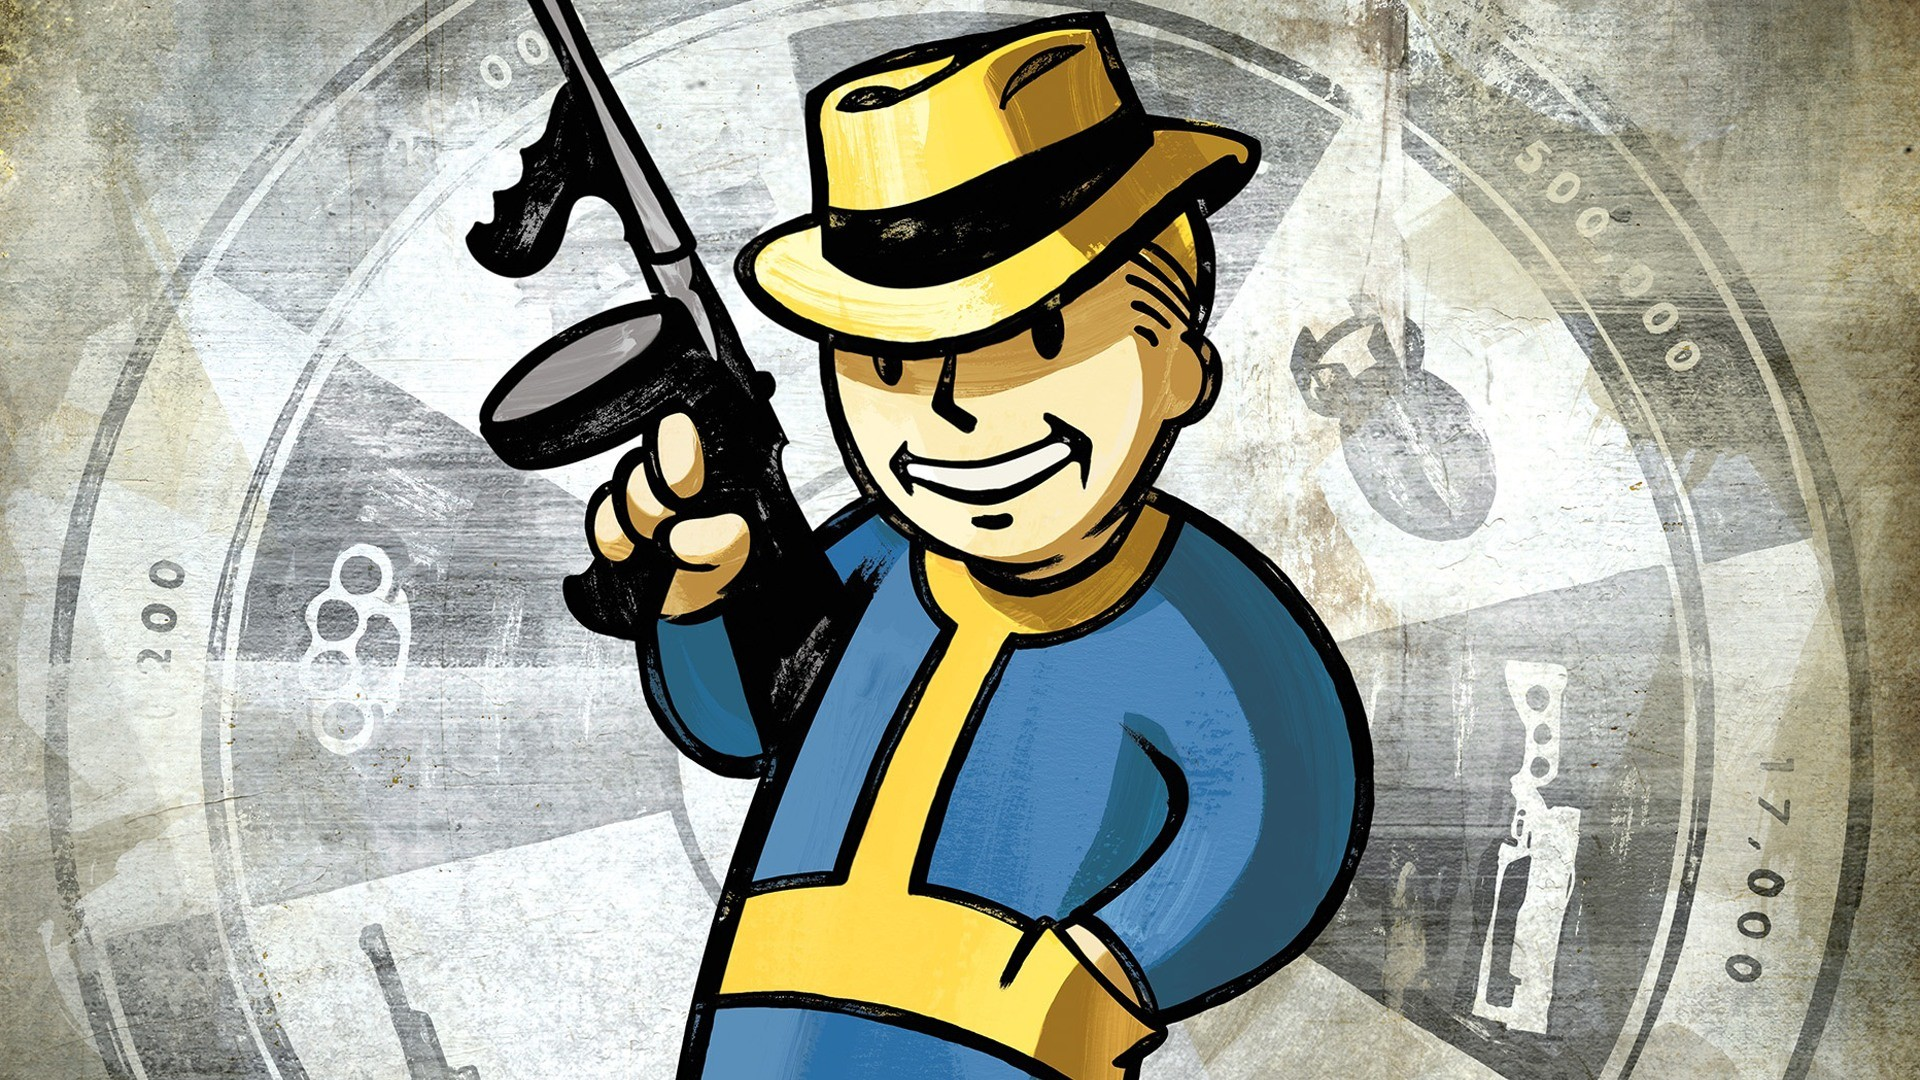 1920x1080 Vault Boy Wallpaper